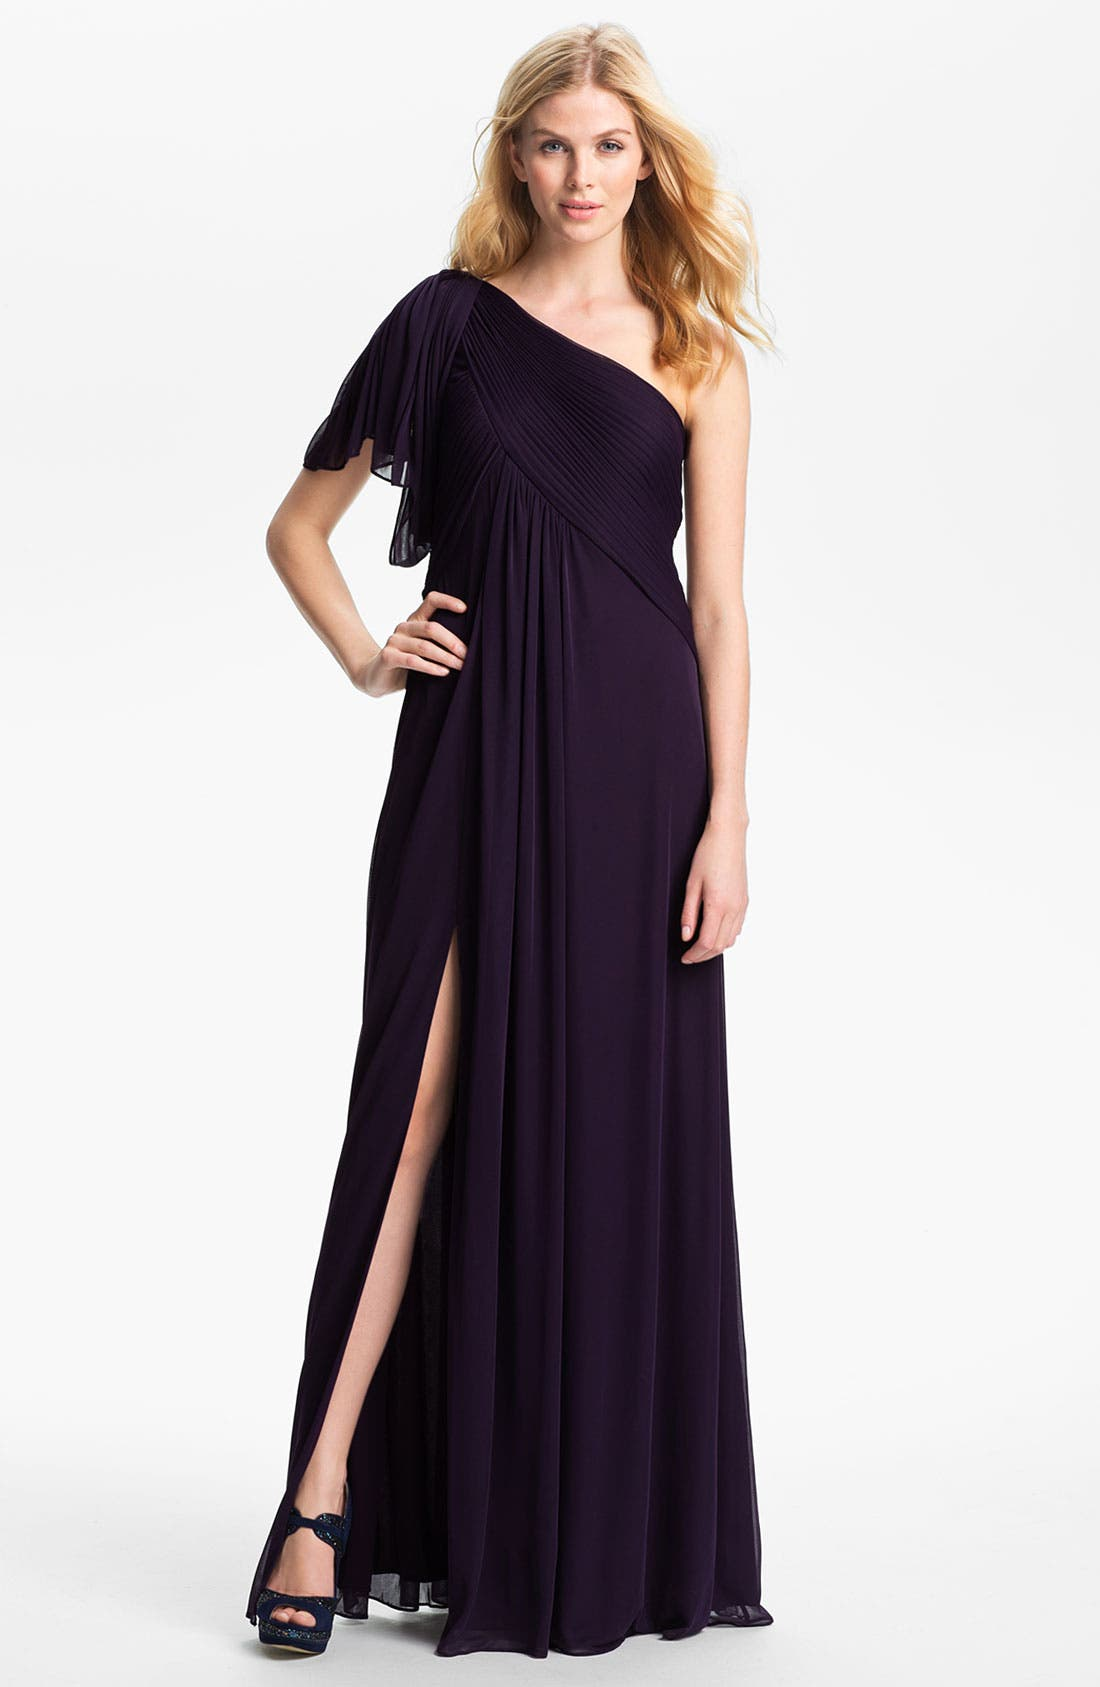 Alternate Image 1 Selected - Adrianna Papell Pleated One Shoulder Grecian Gown (Petite)